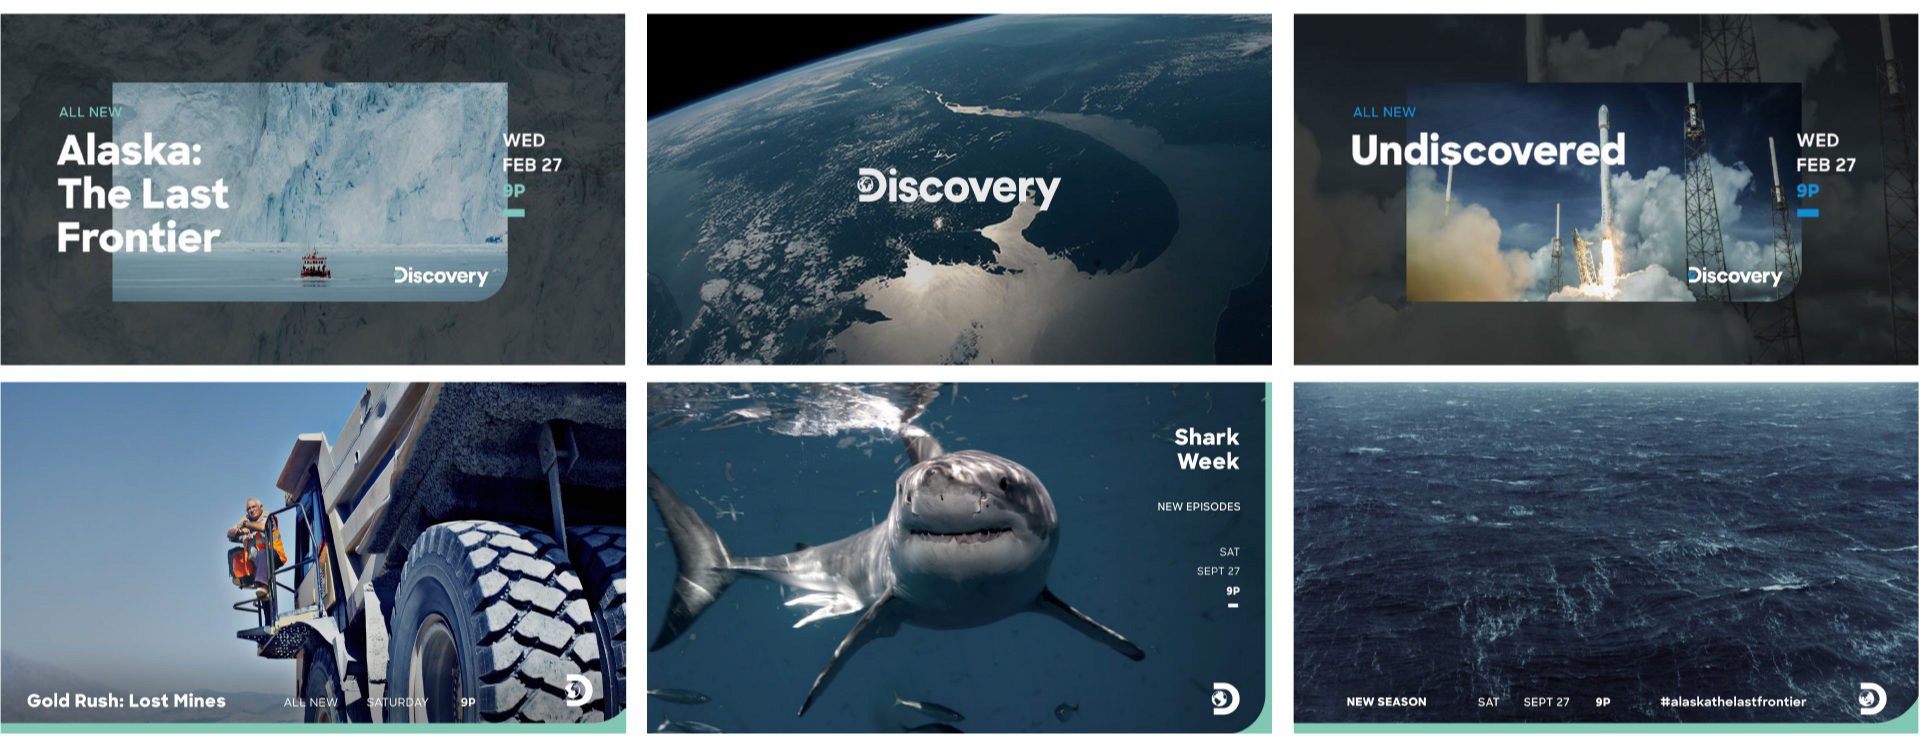 Follow-up: New Logo, Identity, and On-air Look for Discovery Channel by Roger